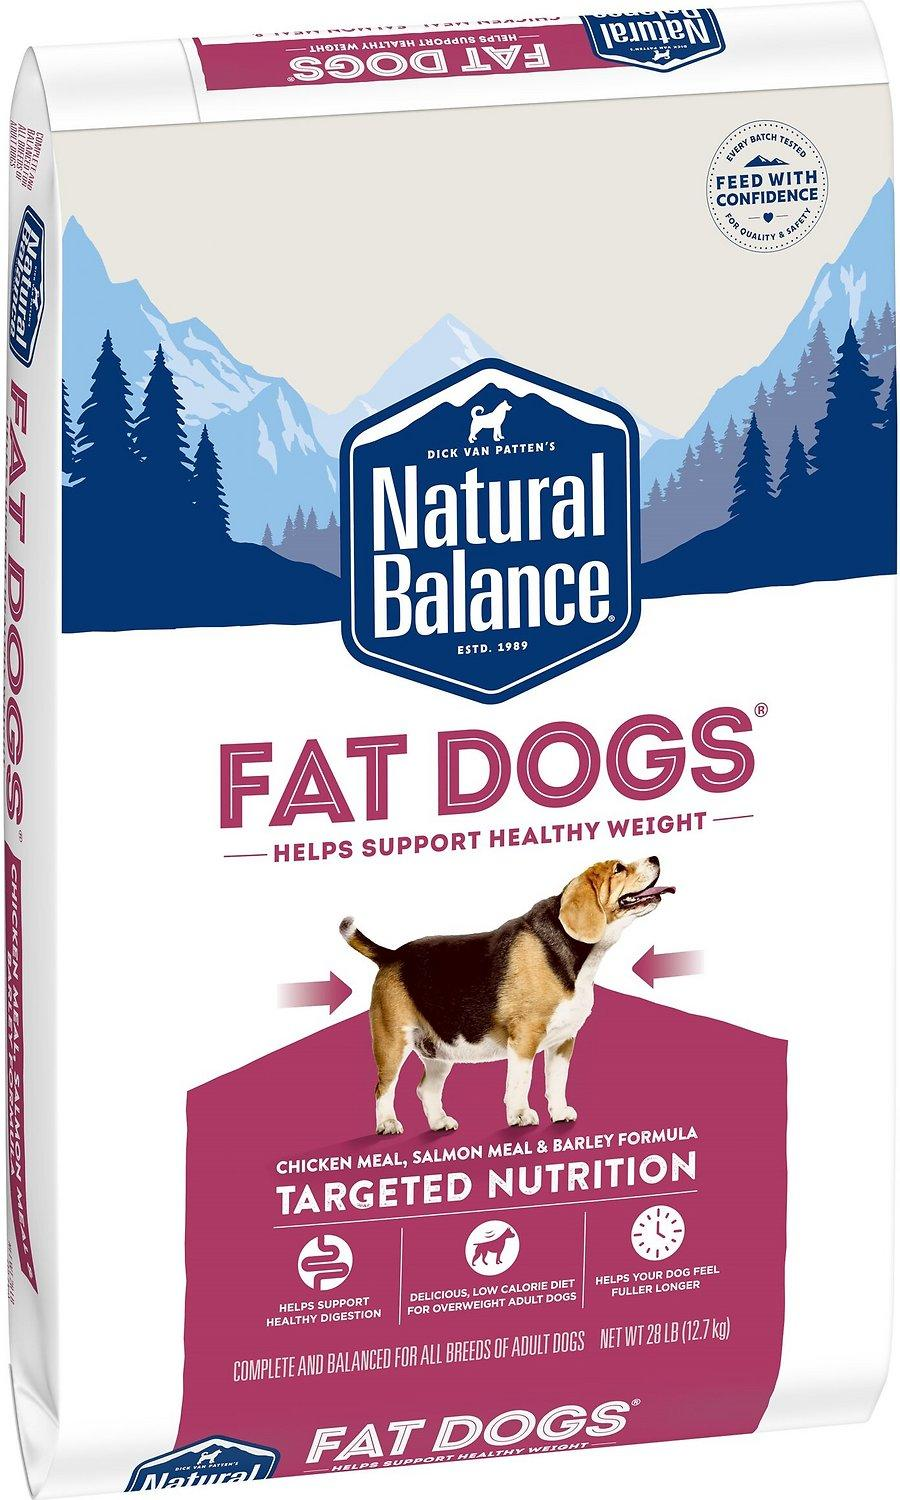 Natural Balance Fat Dogs Chicken & Salmon Formula Low Calorie Dry Dog Food, 28-lb bag